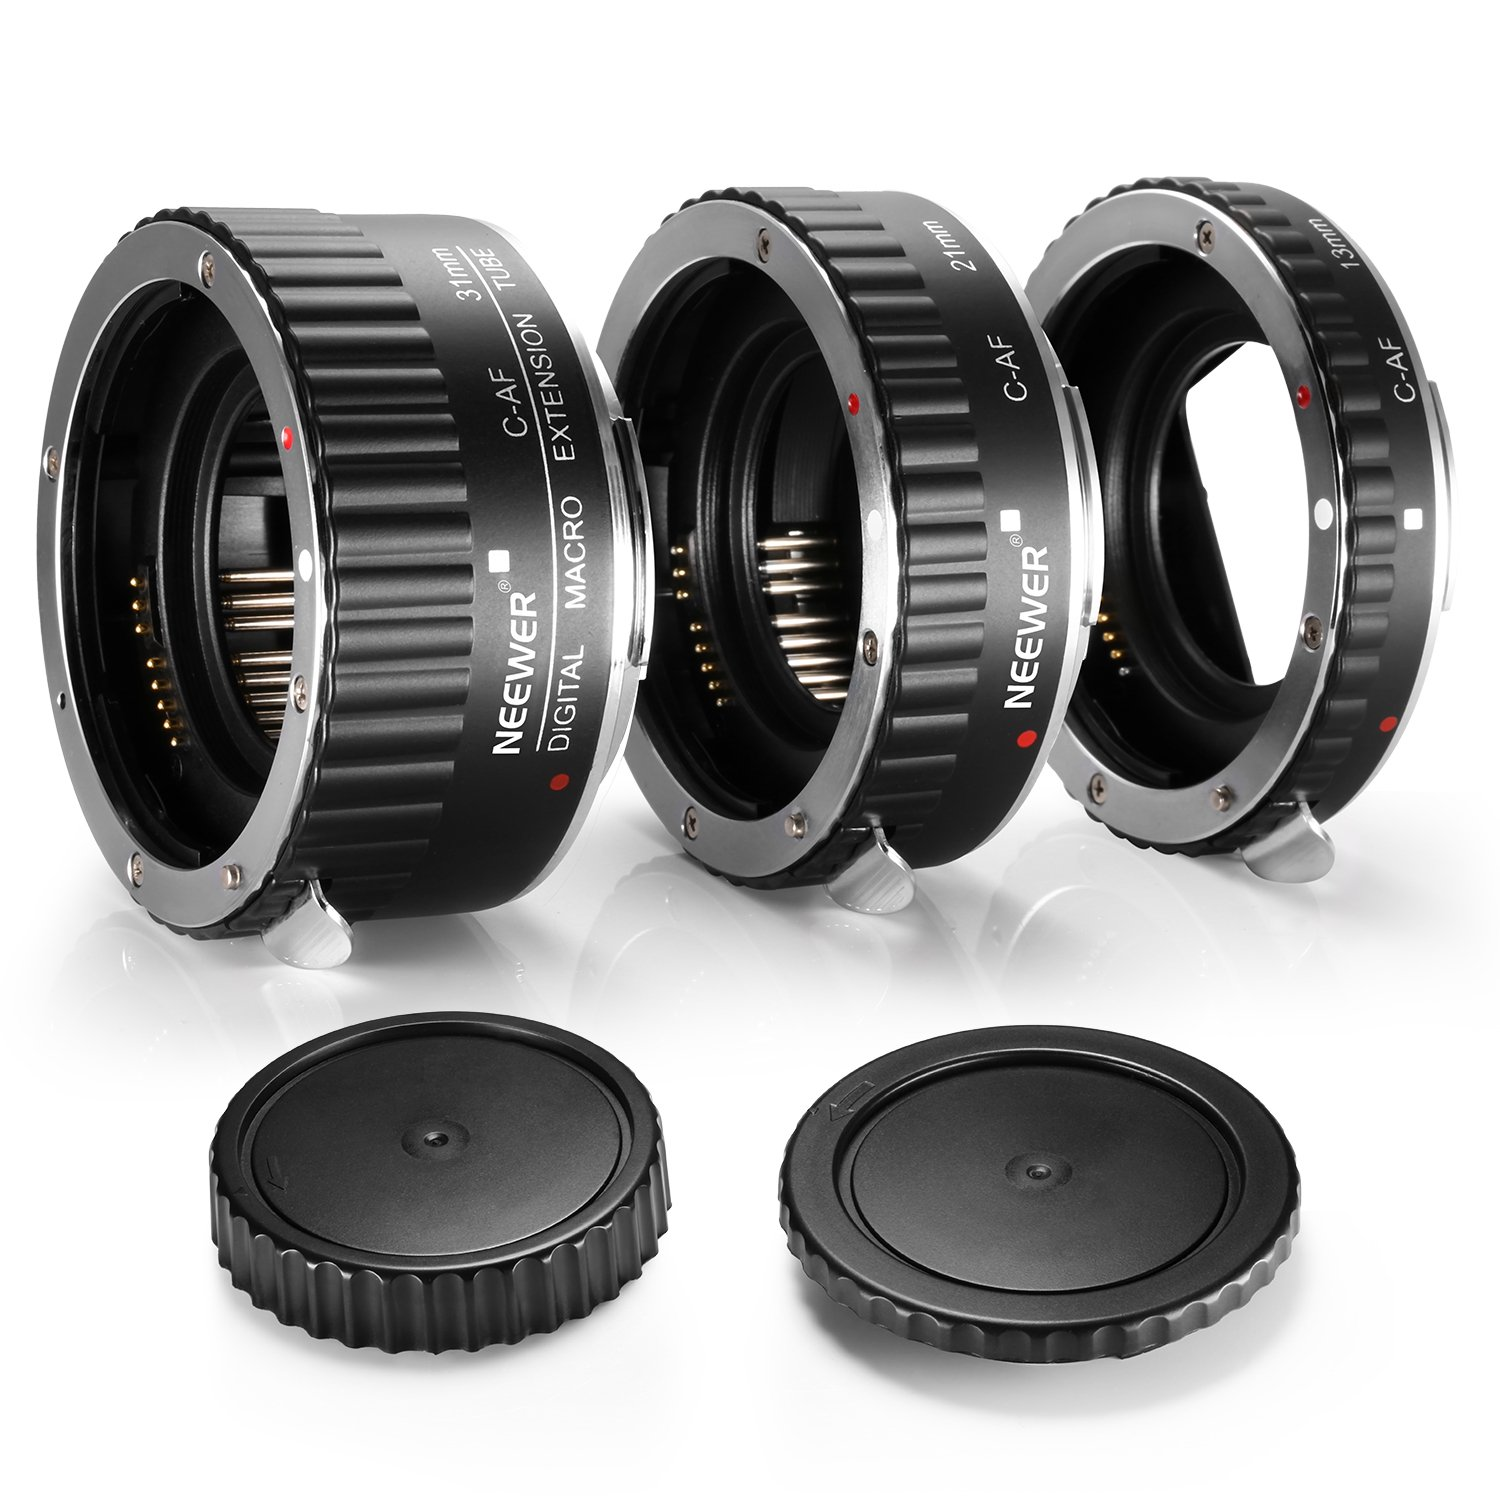 Neewer 13-21-31 AF Auto Focus Macro Extension Tube Set for Canon DSLR Cameras Such as 5D Mark II III,1D Mark II III IV 7D 10D 20D 30D 40D 50D 300D 350D 400D 550D 700D by Neewer